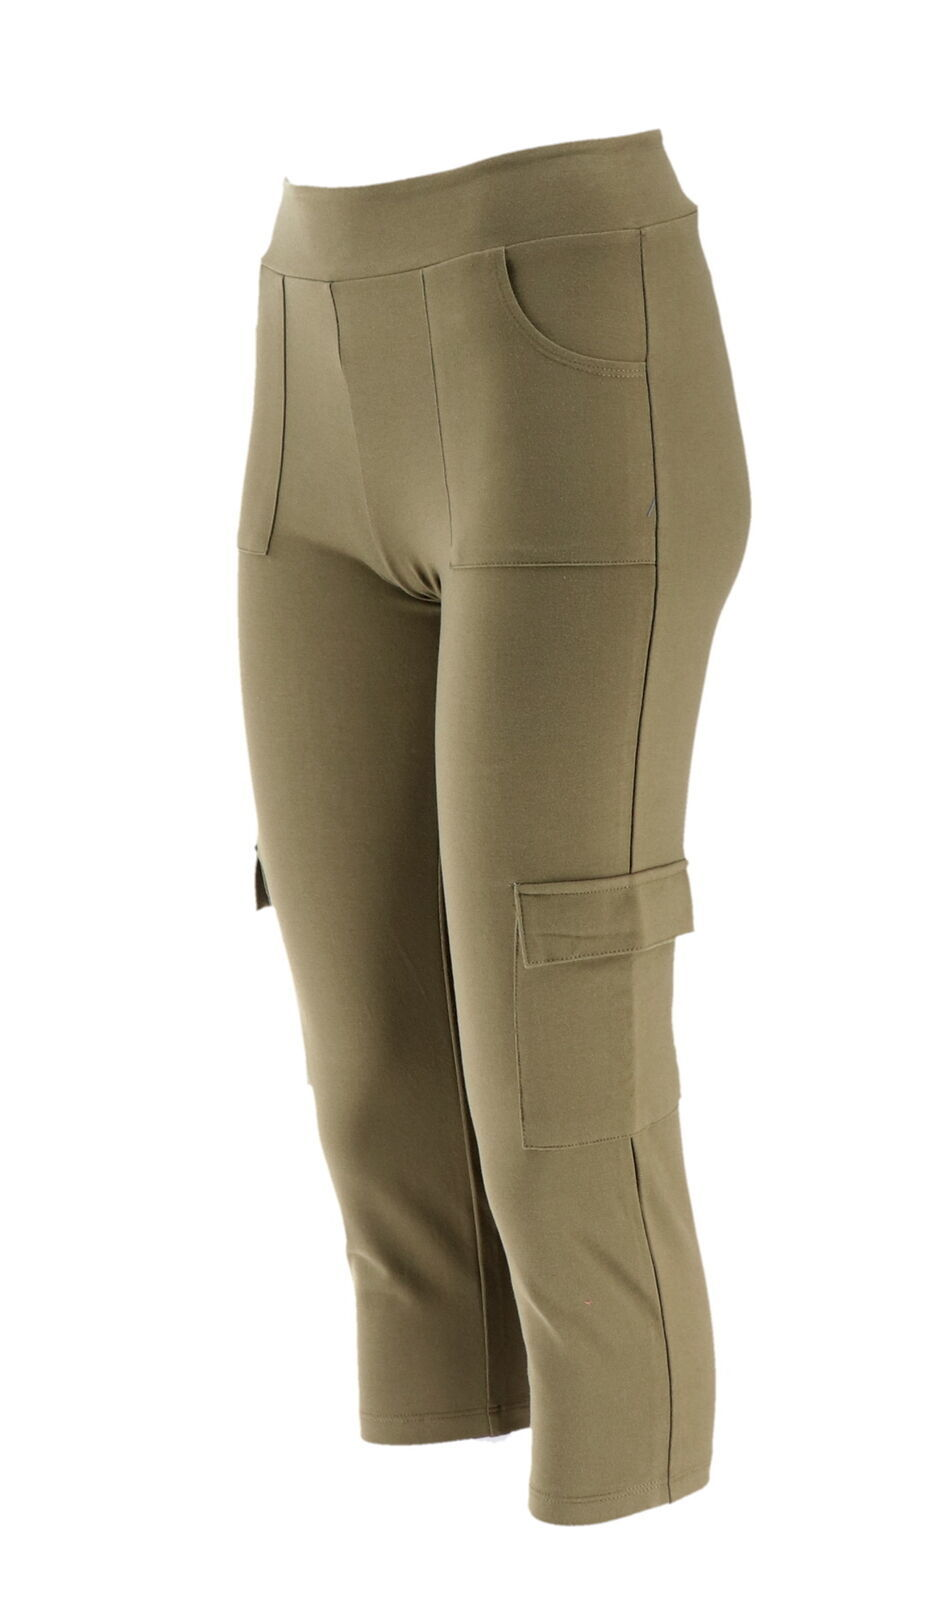 Women with Control Cropped Cargo Pants Washed Olive PXXS NEW A264076